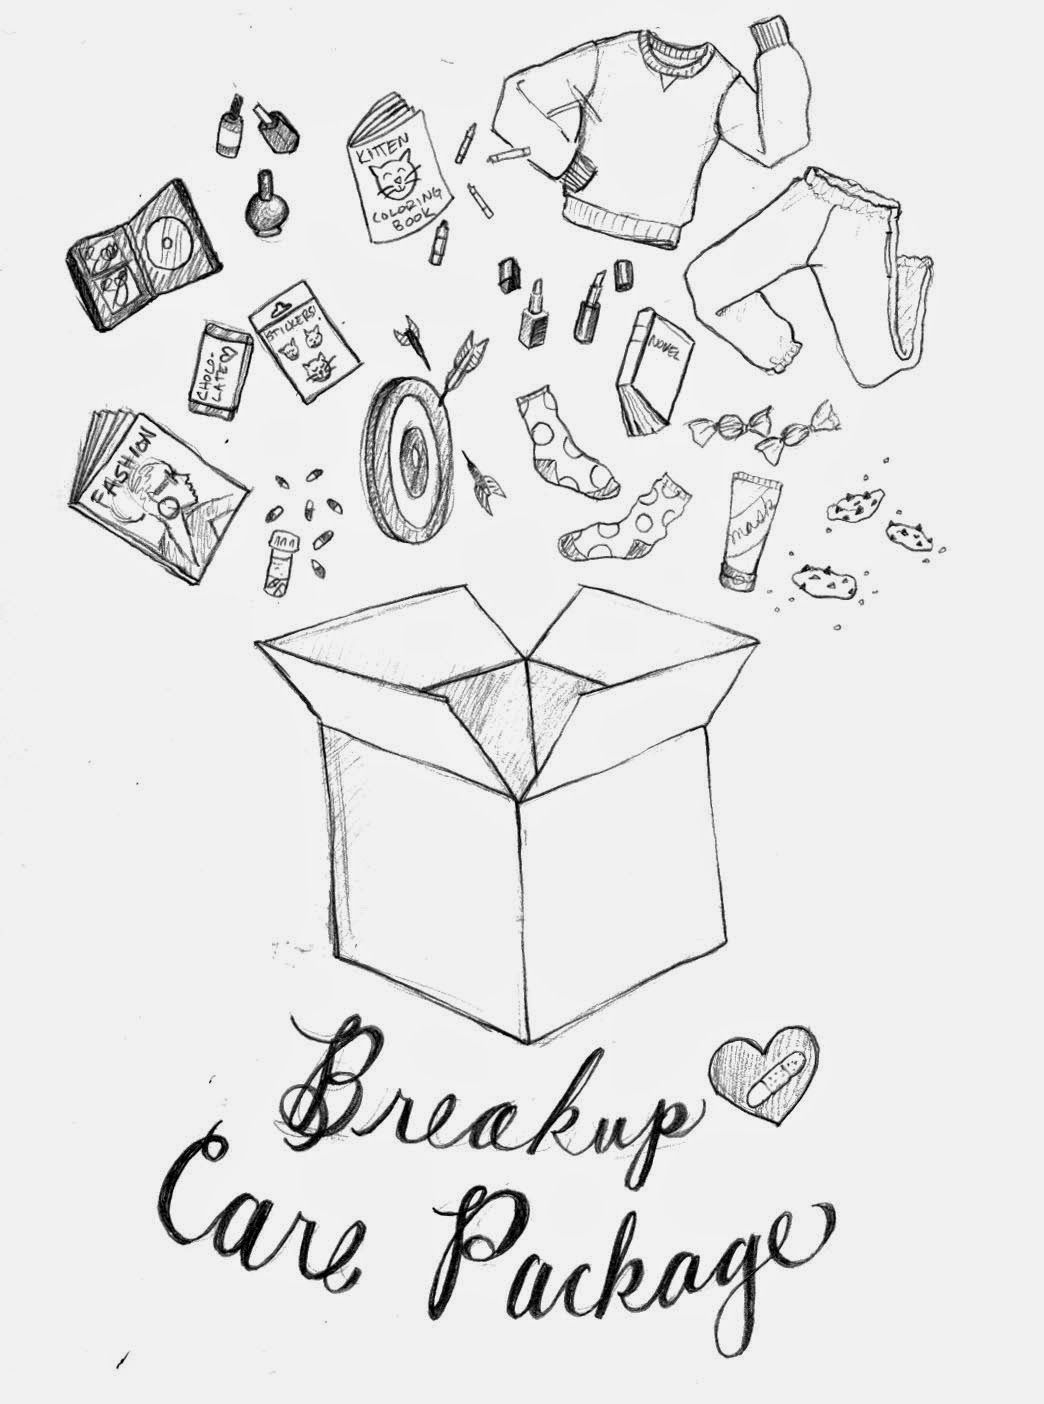 The Spinsterhood Diaries Spinster Shopping Breakup Care Package Care Package Breakup Gift Breakup Kit